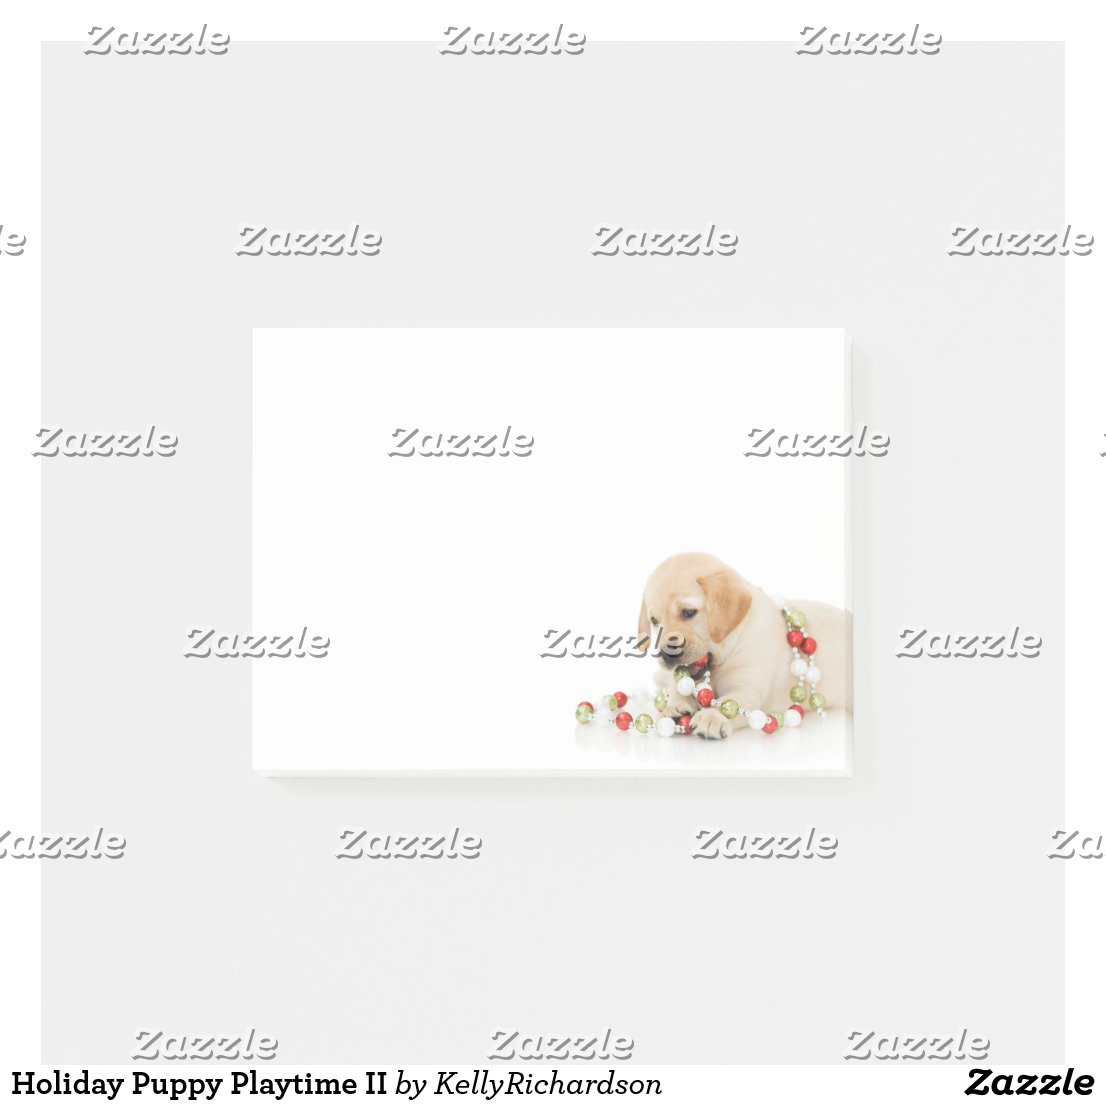 Holiday Puppy Playtime II Post-it Notes